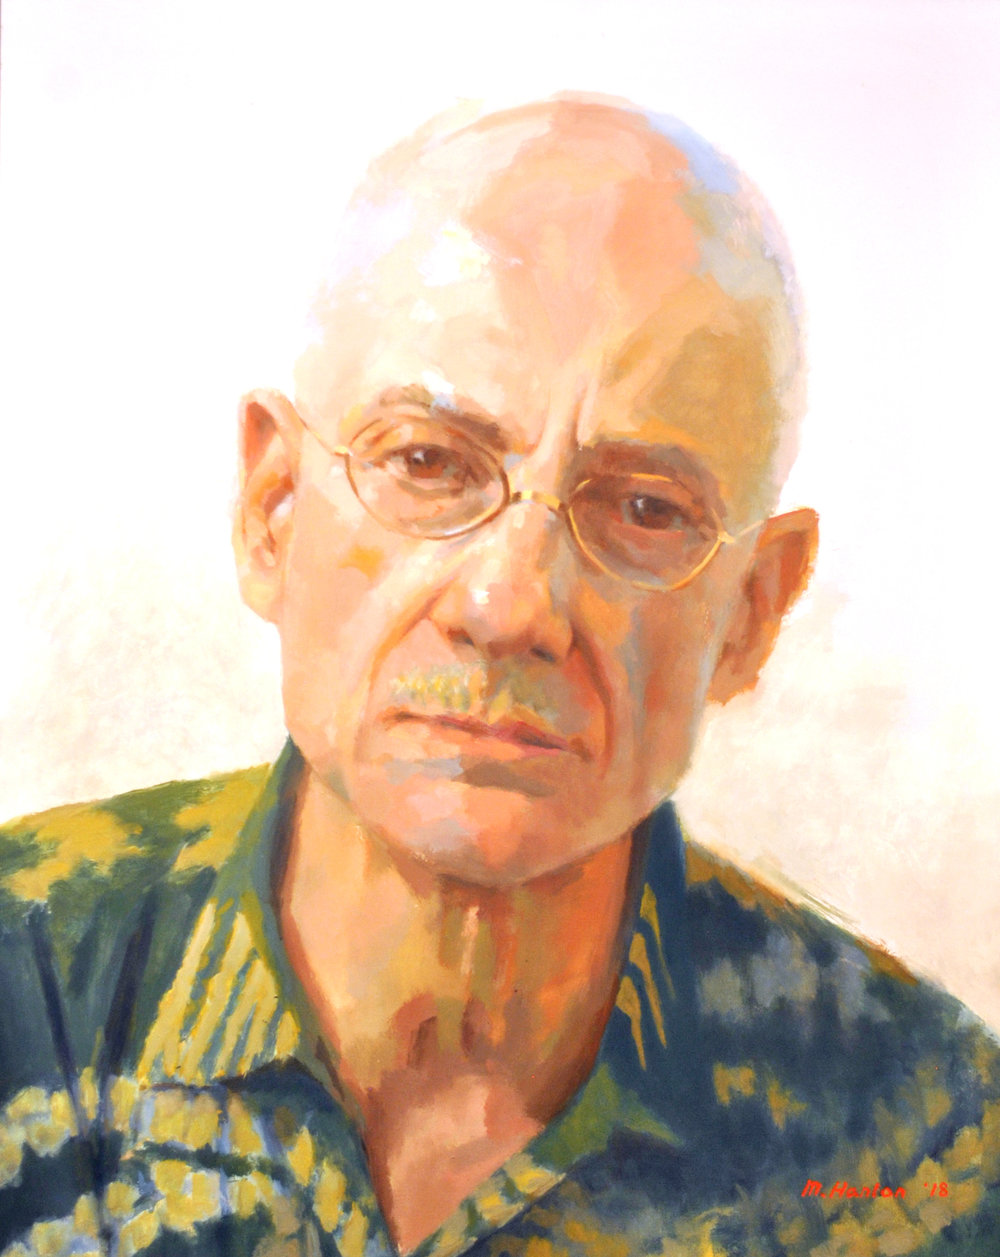 FIRST PLACE:   James Ellroy  - by artist Mike Hanlon